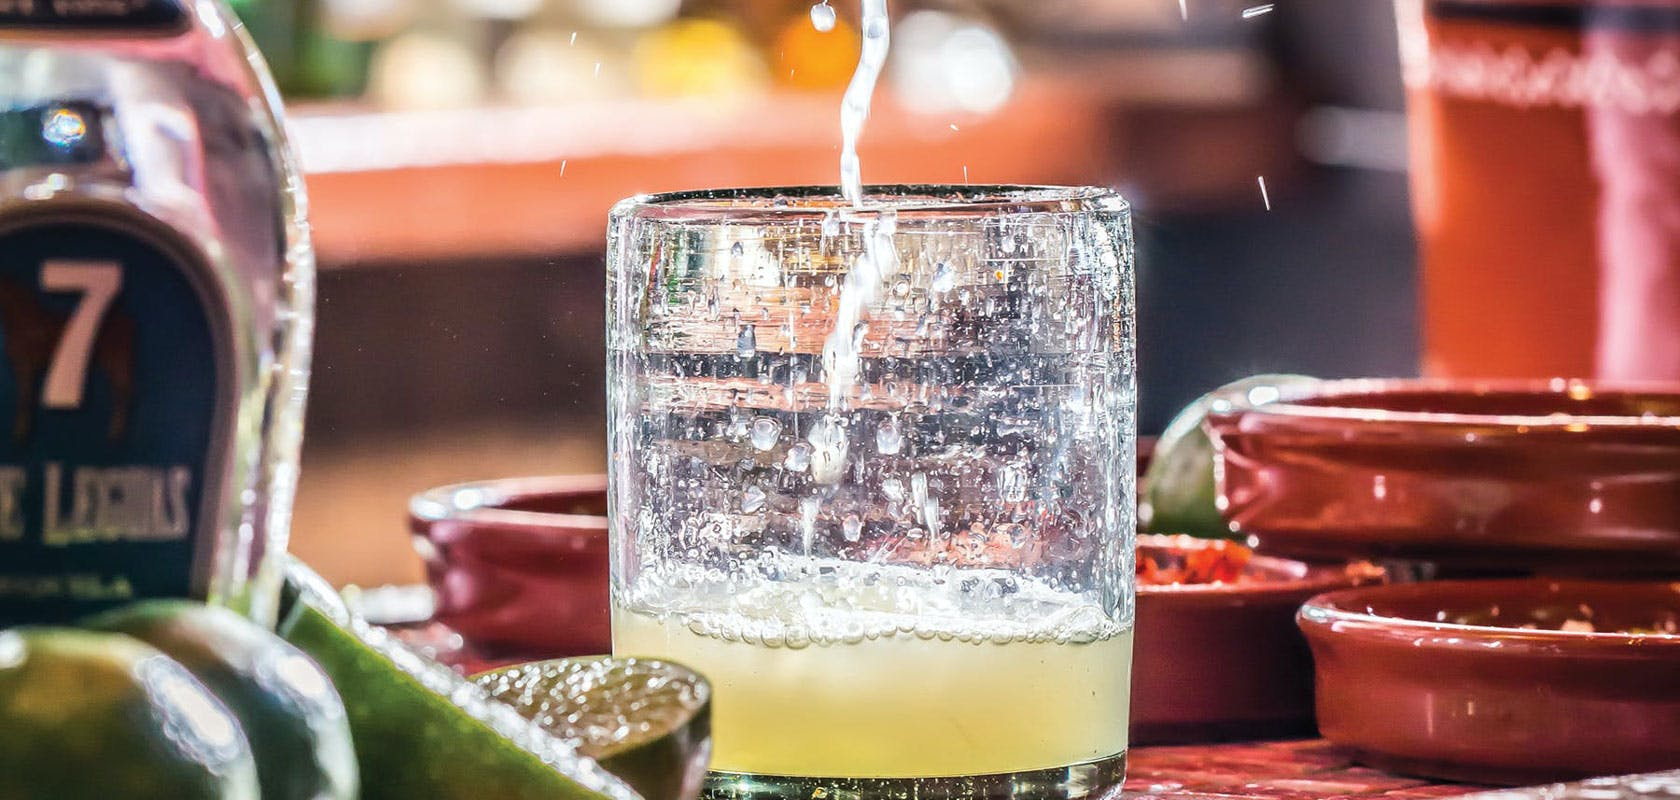 A margarita being made.